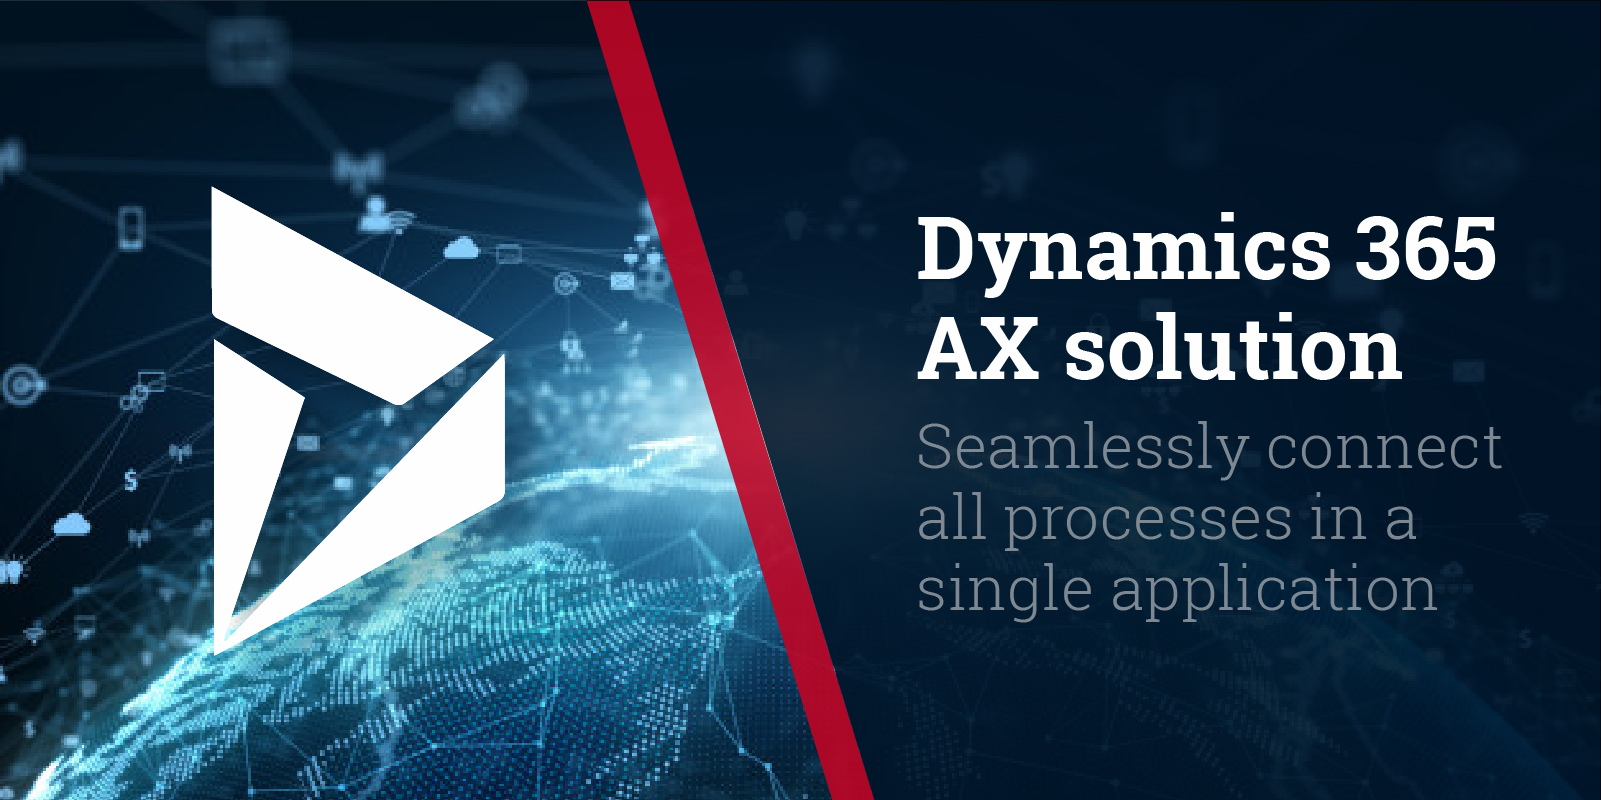 The new Dynamics 365 AX solution to seamlessly connect all processes in a single application